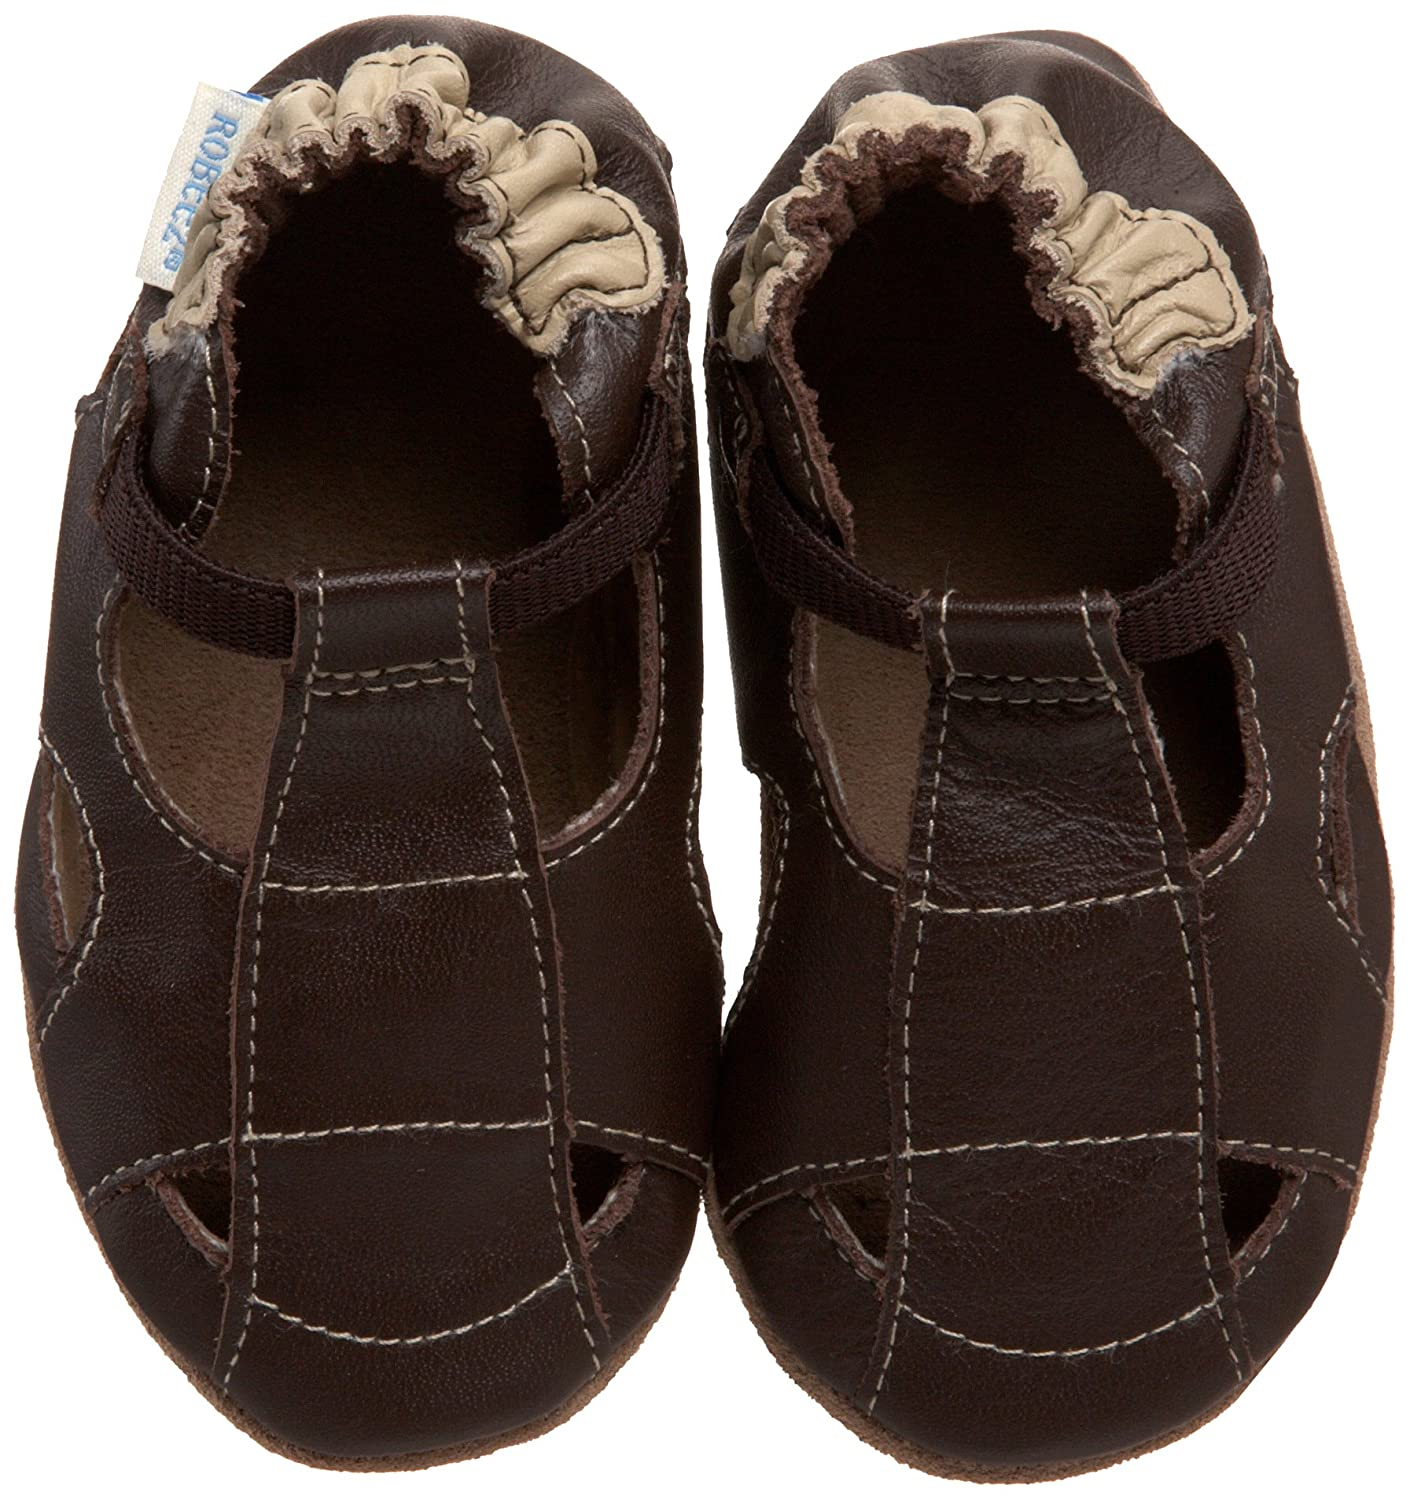 Infant//Toddler Robeez Soft Soles Sandal Crib Shoe